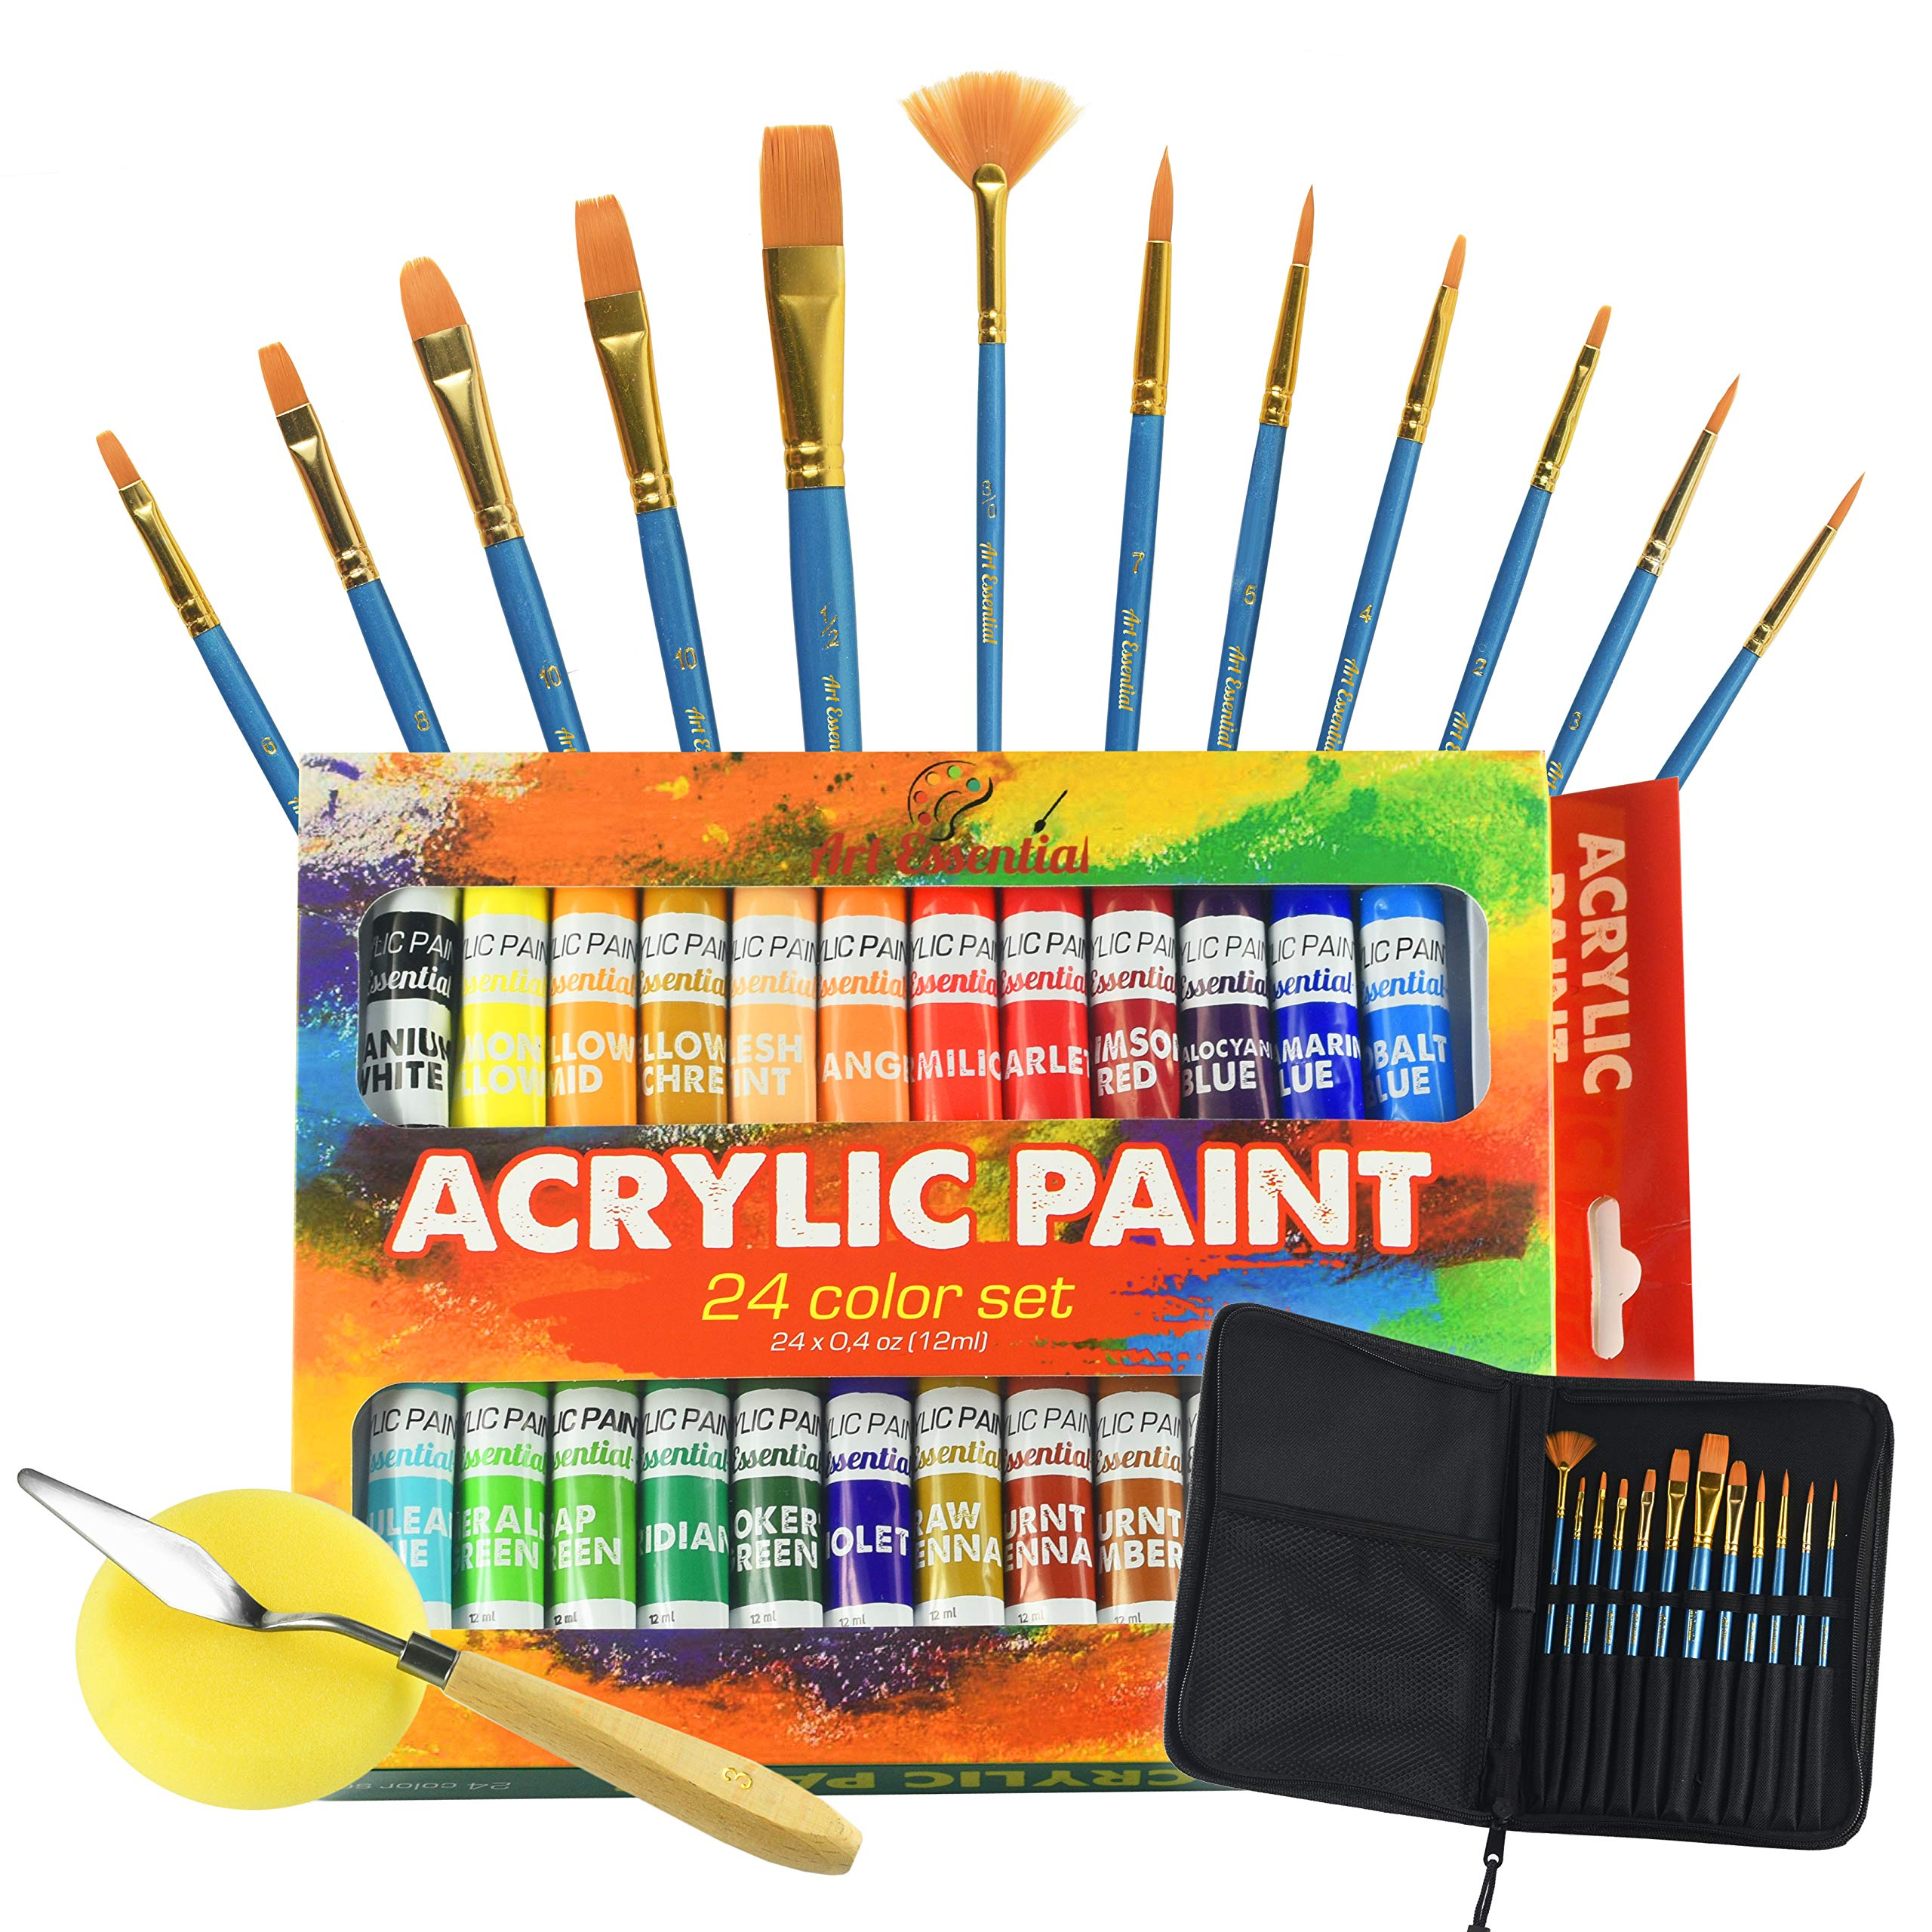 Upgraded Acrylic Paint Set - High-End Arts & Crafts Painting Supplies for Kids and Adults - 24 Stunning Pigments, 10 Professional Paint Brushes & Carrying Case + Extra Bonus: Palette Knife with Sponge by Art Essential